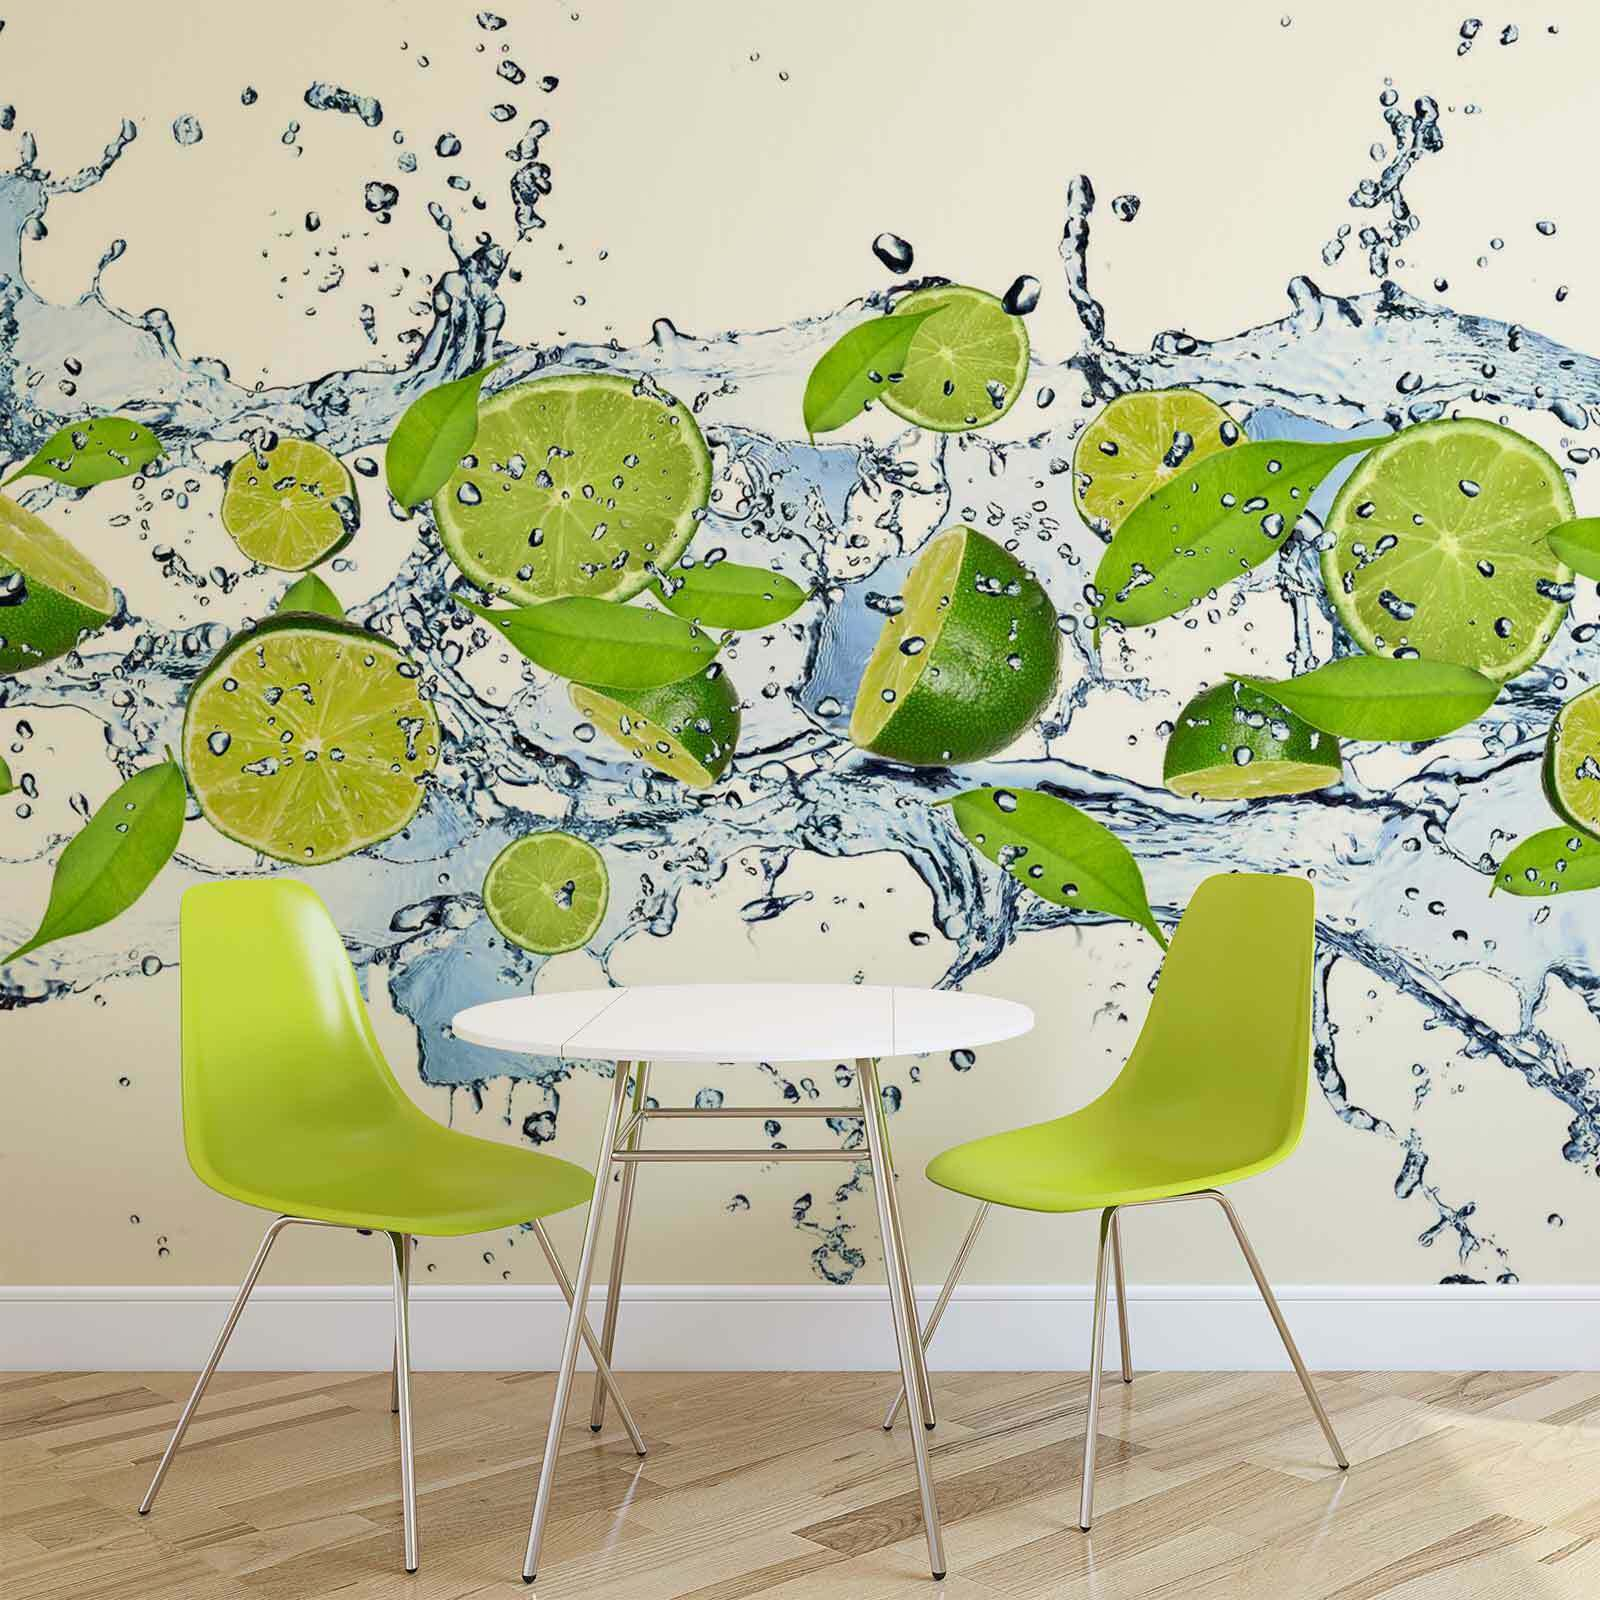 WALL MURAL PHOTO WALLPAPER XXL Limes Water (288WS)